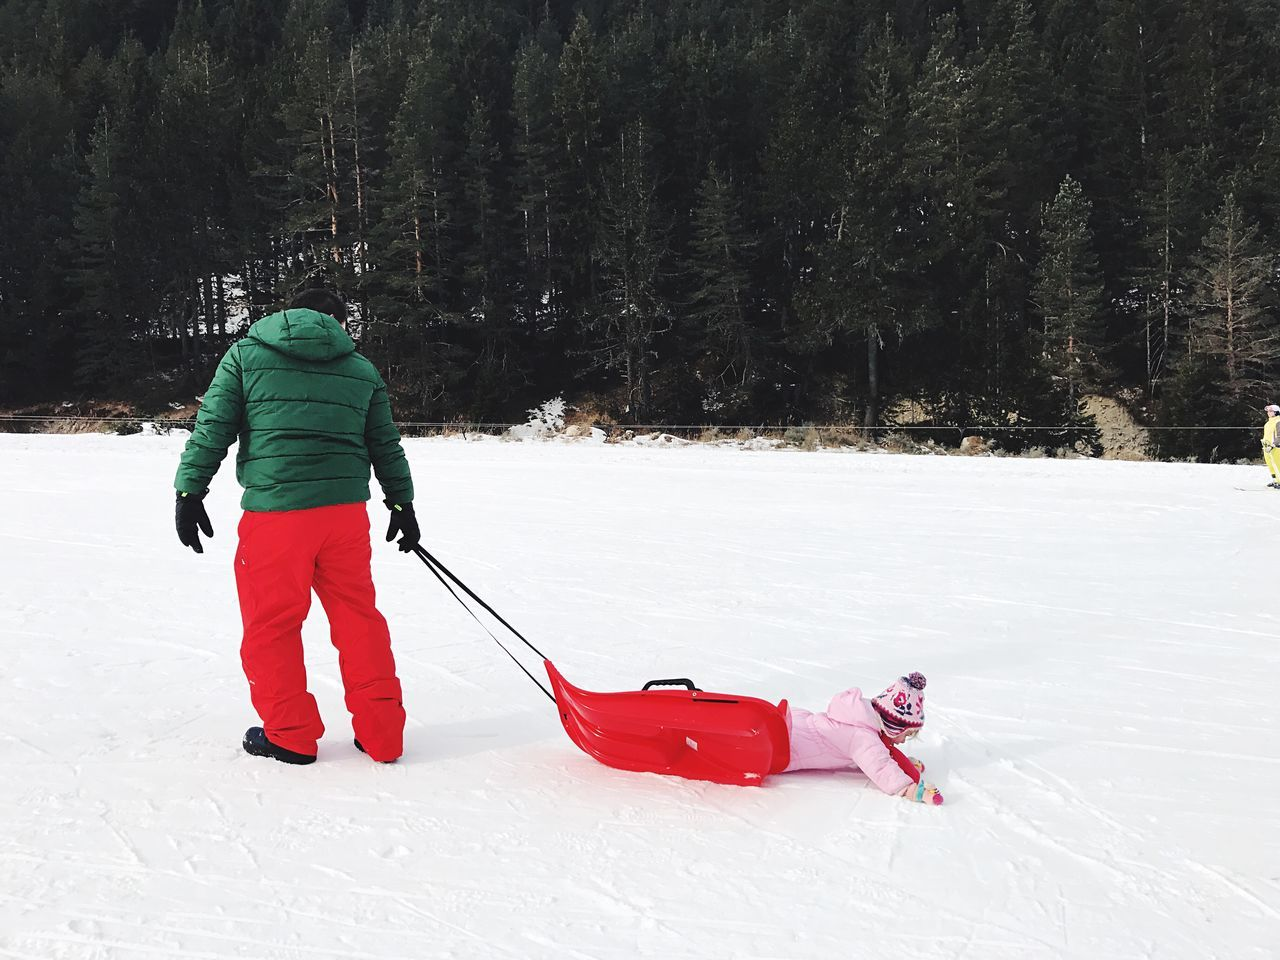 Parenthood Father Fatherhood Moments Toddler  Children Winter Snow Cold Temperature Warm Clothing Full Length Red White Color Leisure Activity Rear View Vacations Forest Outdoors Winter Sport People One Person Day Nature Tobogganing Ice Rink Adult